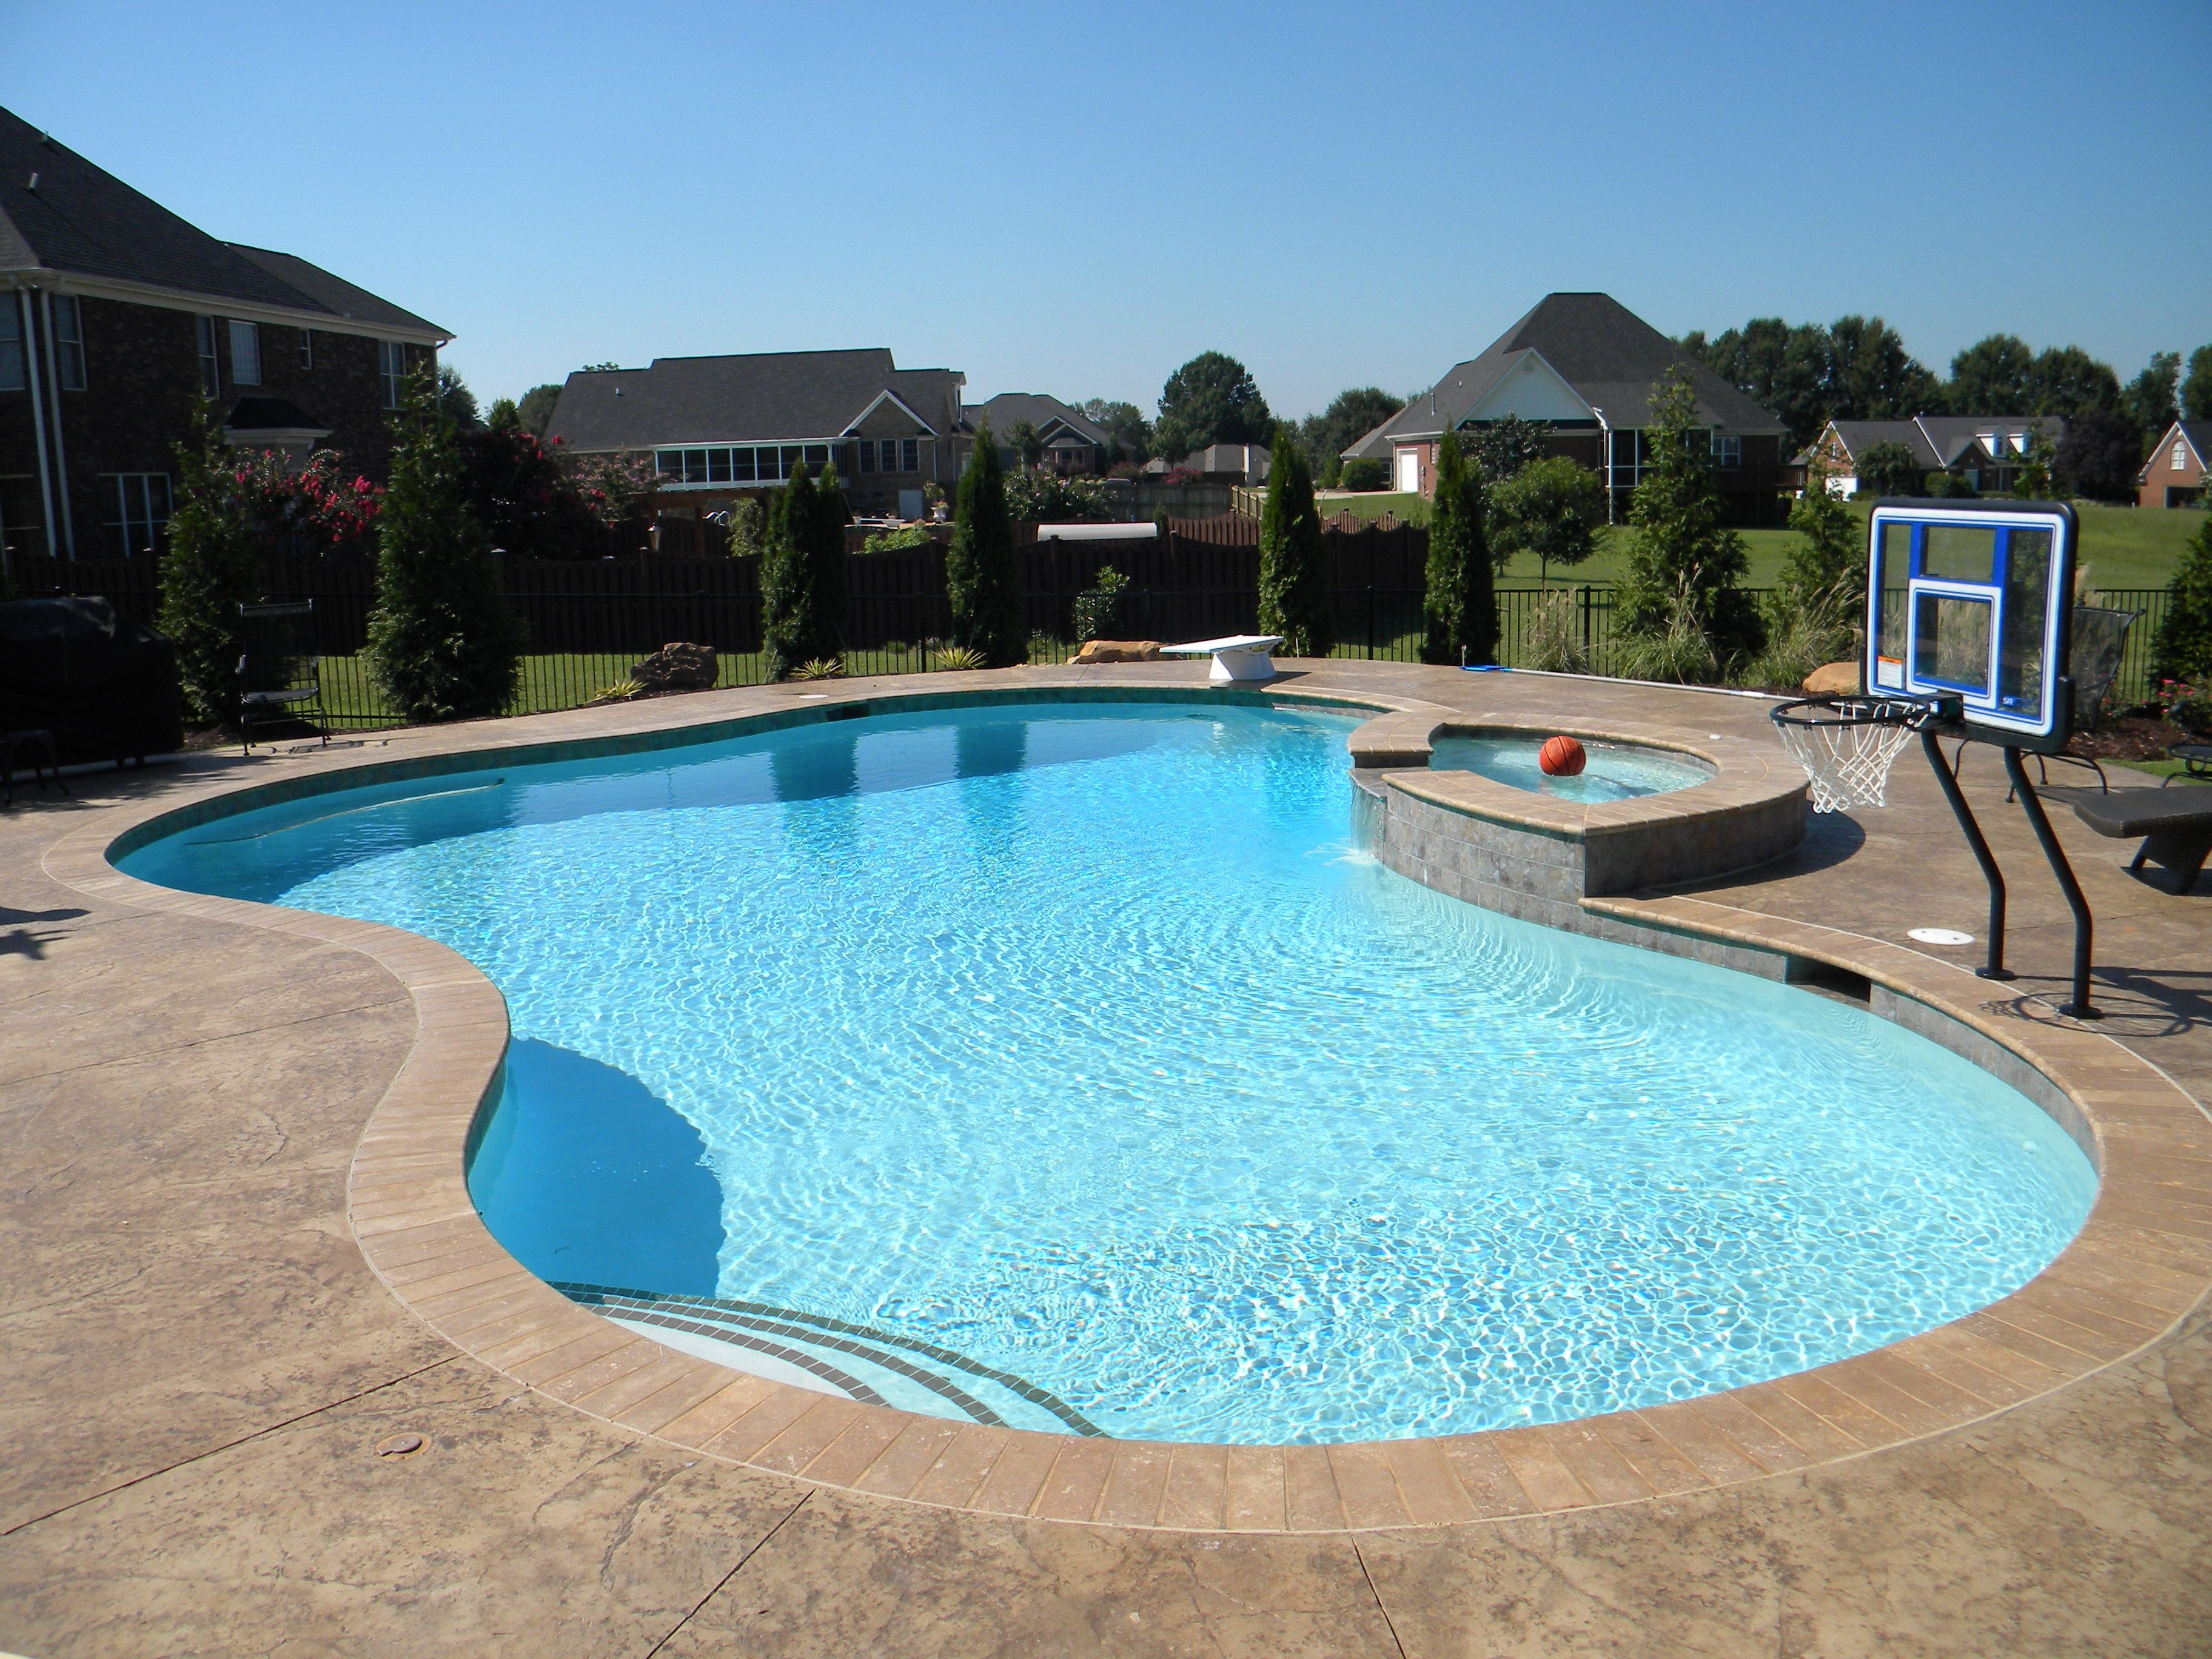 Gunite pool with spa and basketball goal | Residential Pools ...